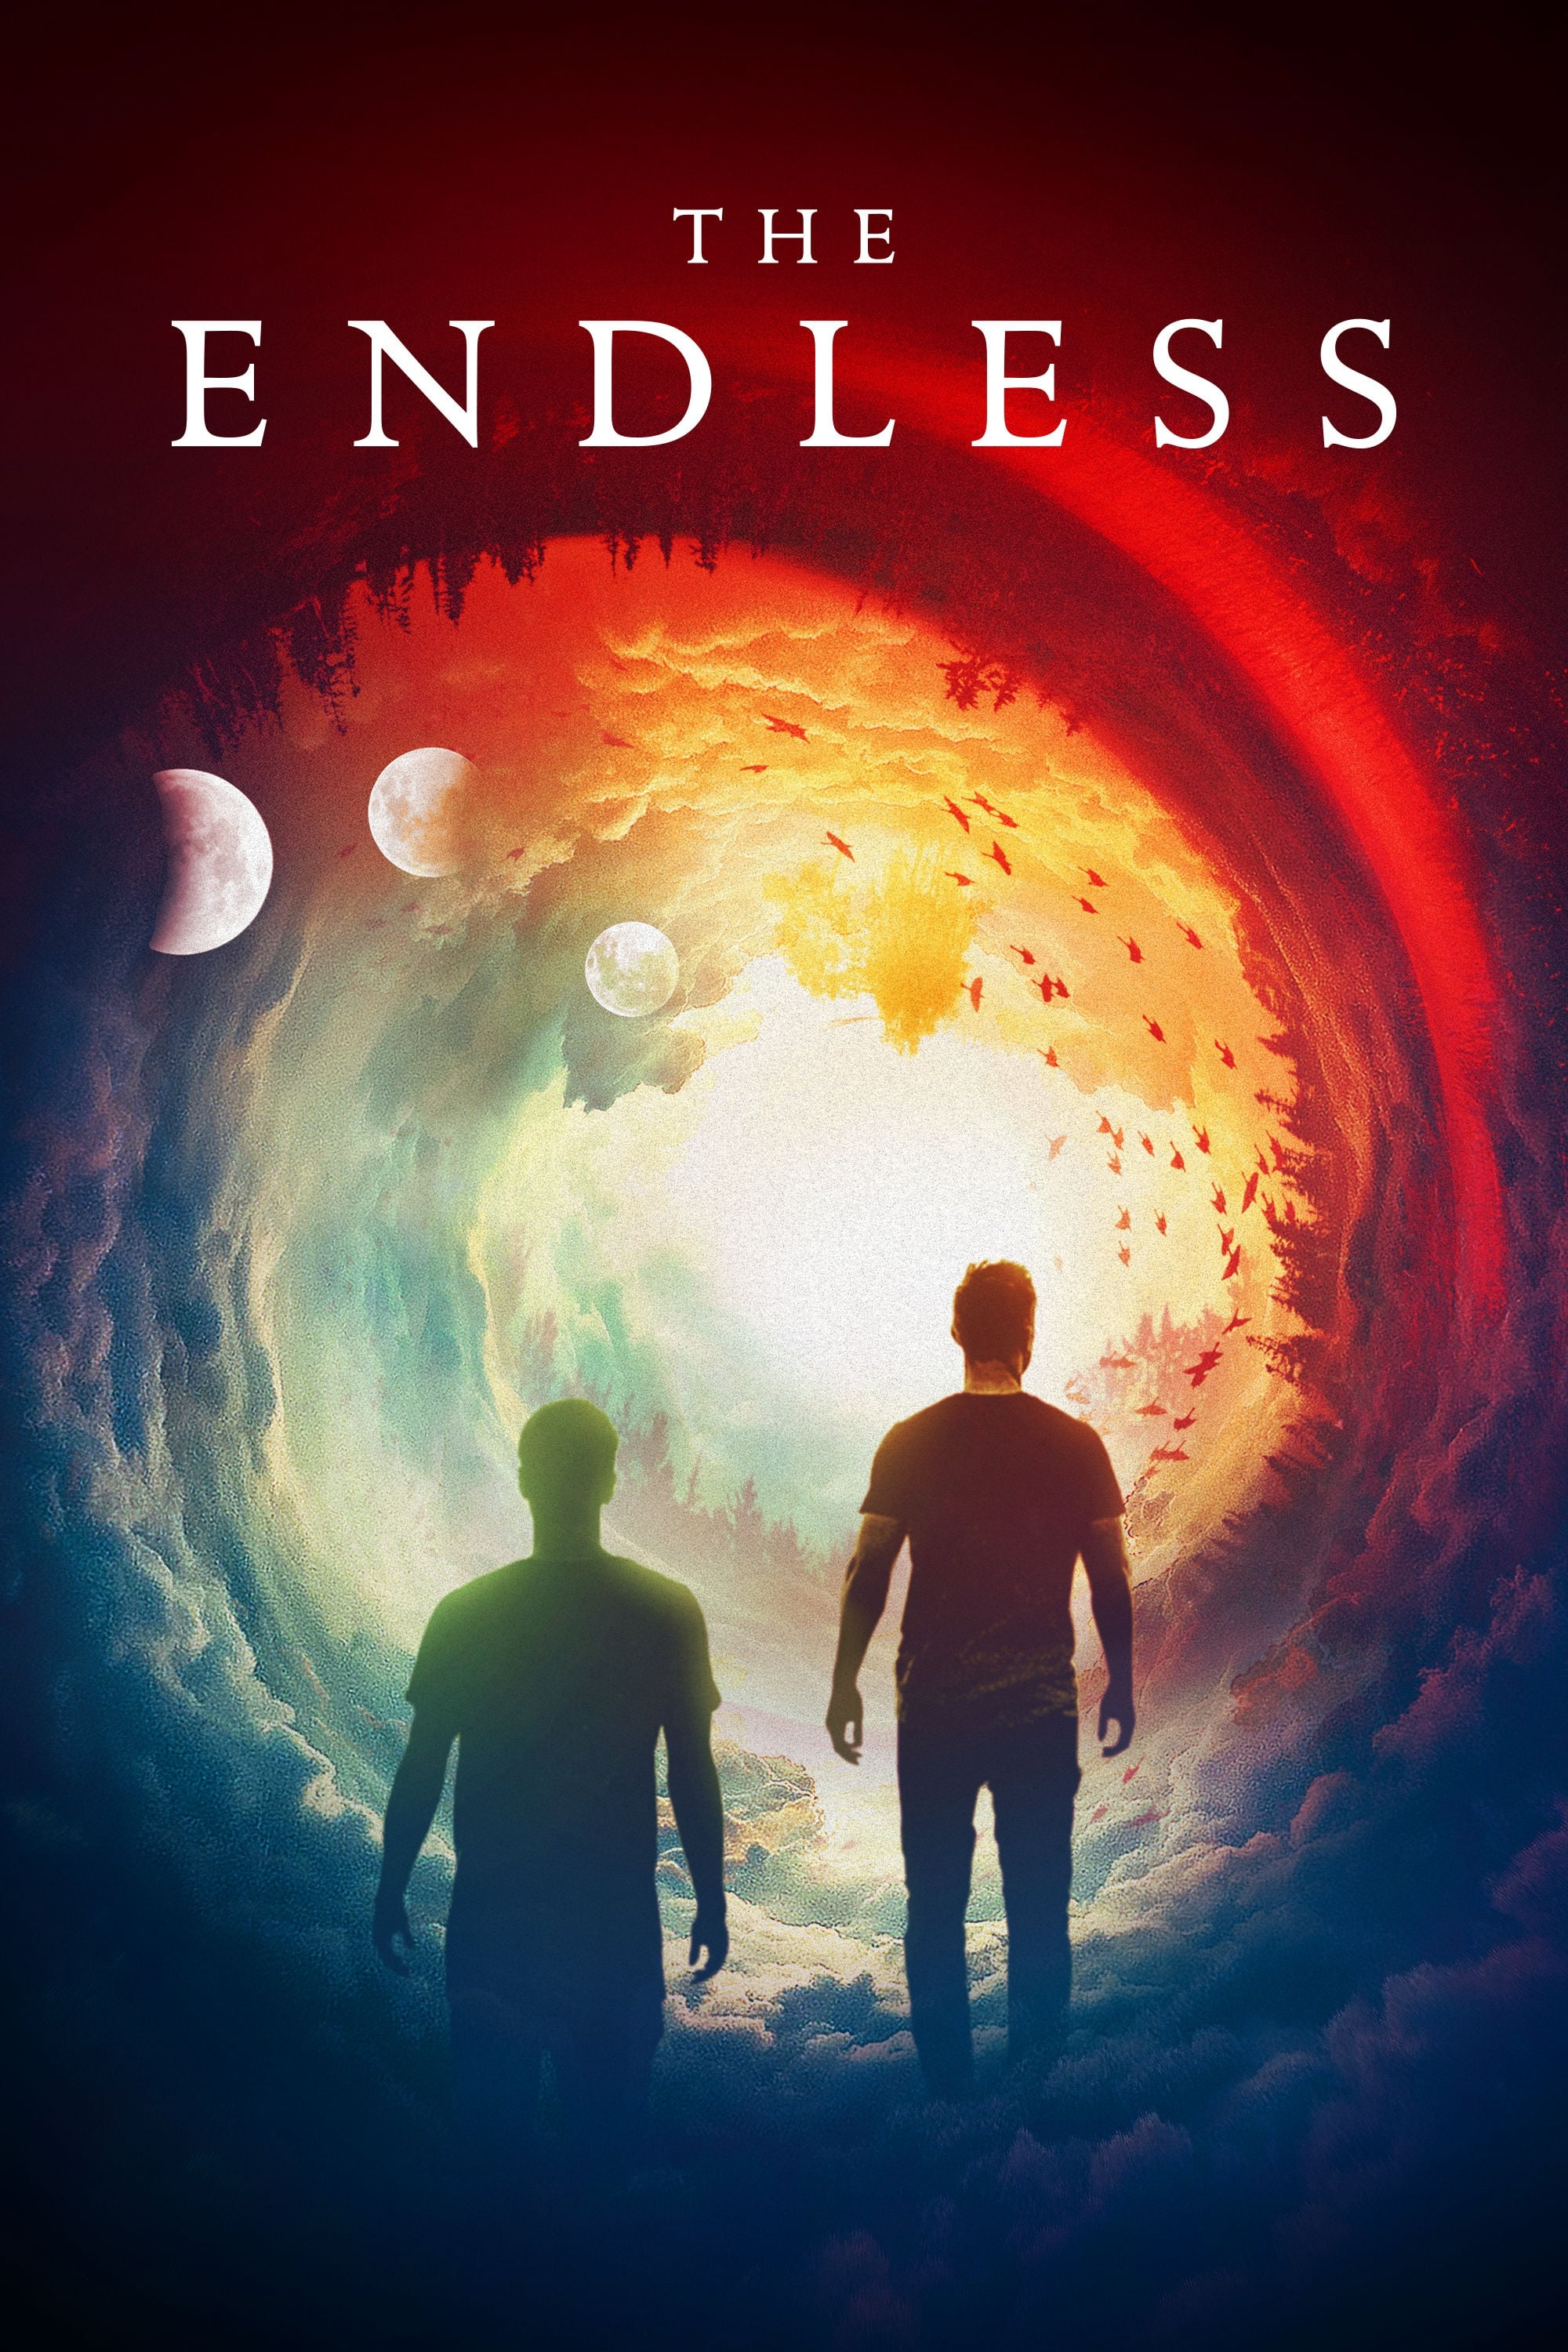 Image result for The Endless movie poster